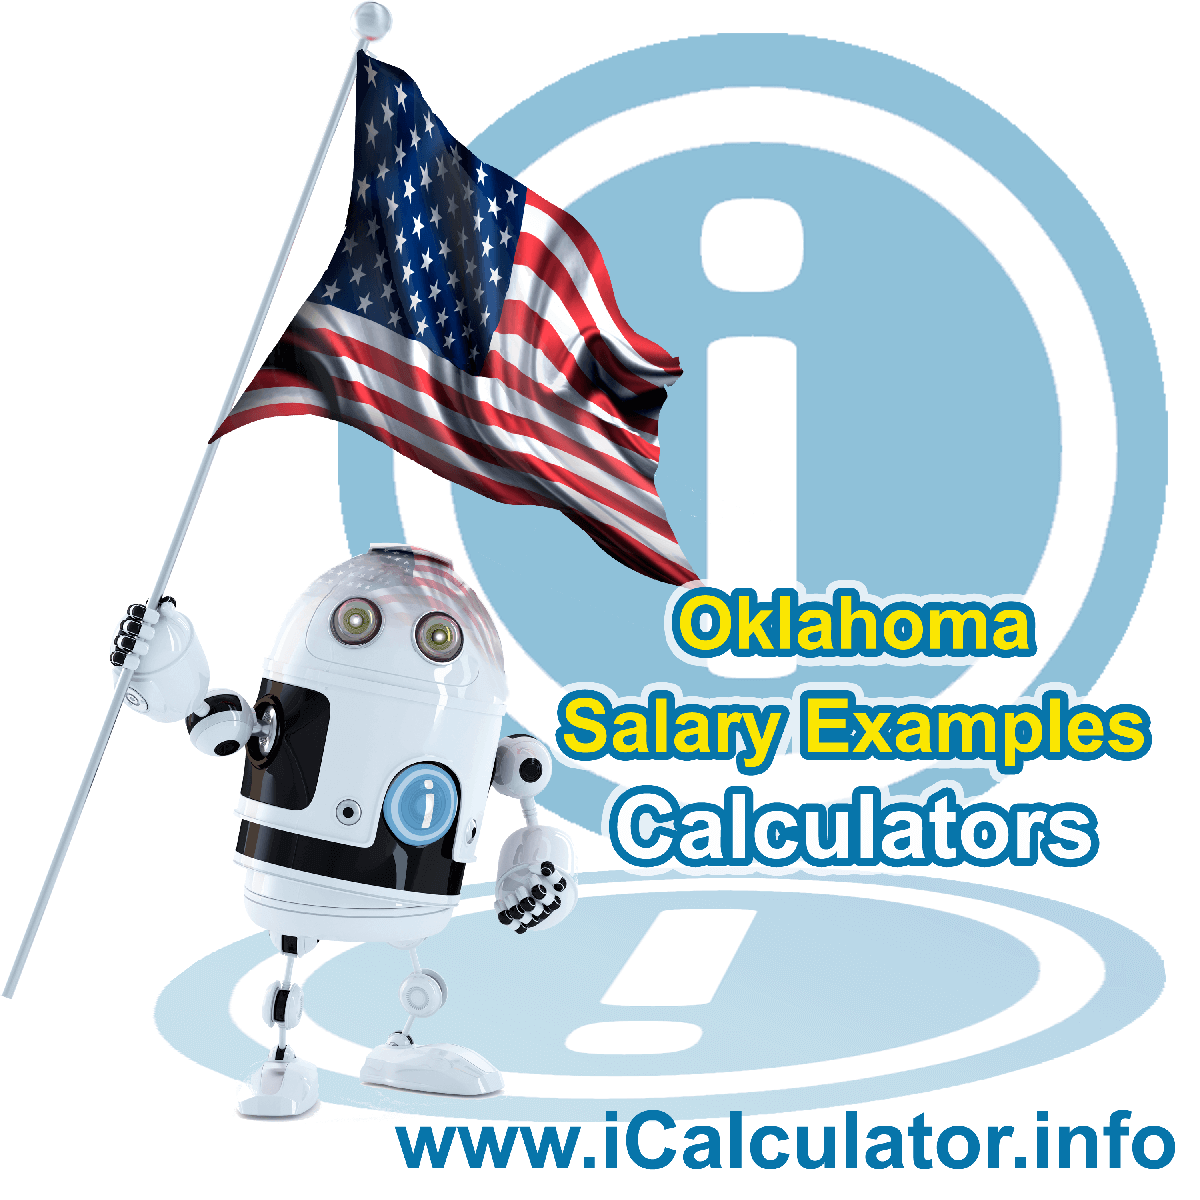 Oklahoma Salary Example for $290.00 in 2020 | iCalculator | $290.00 salary example for employee and employer paying Oklahoma State tincome taxes. Detailed salary after tax calculation including Oklahoma State Tax, Federal State Tax, Medicare Deductions, Social Security, Capital Gains and other income tax and salary deductions complete with supporting Oklahoma state tax tables